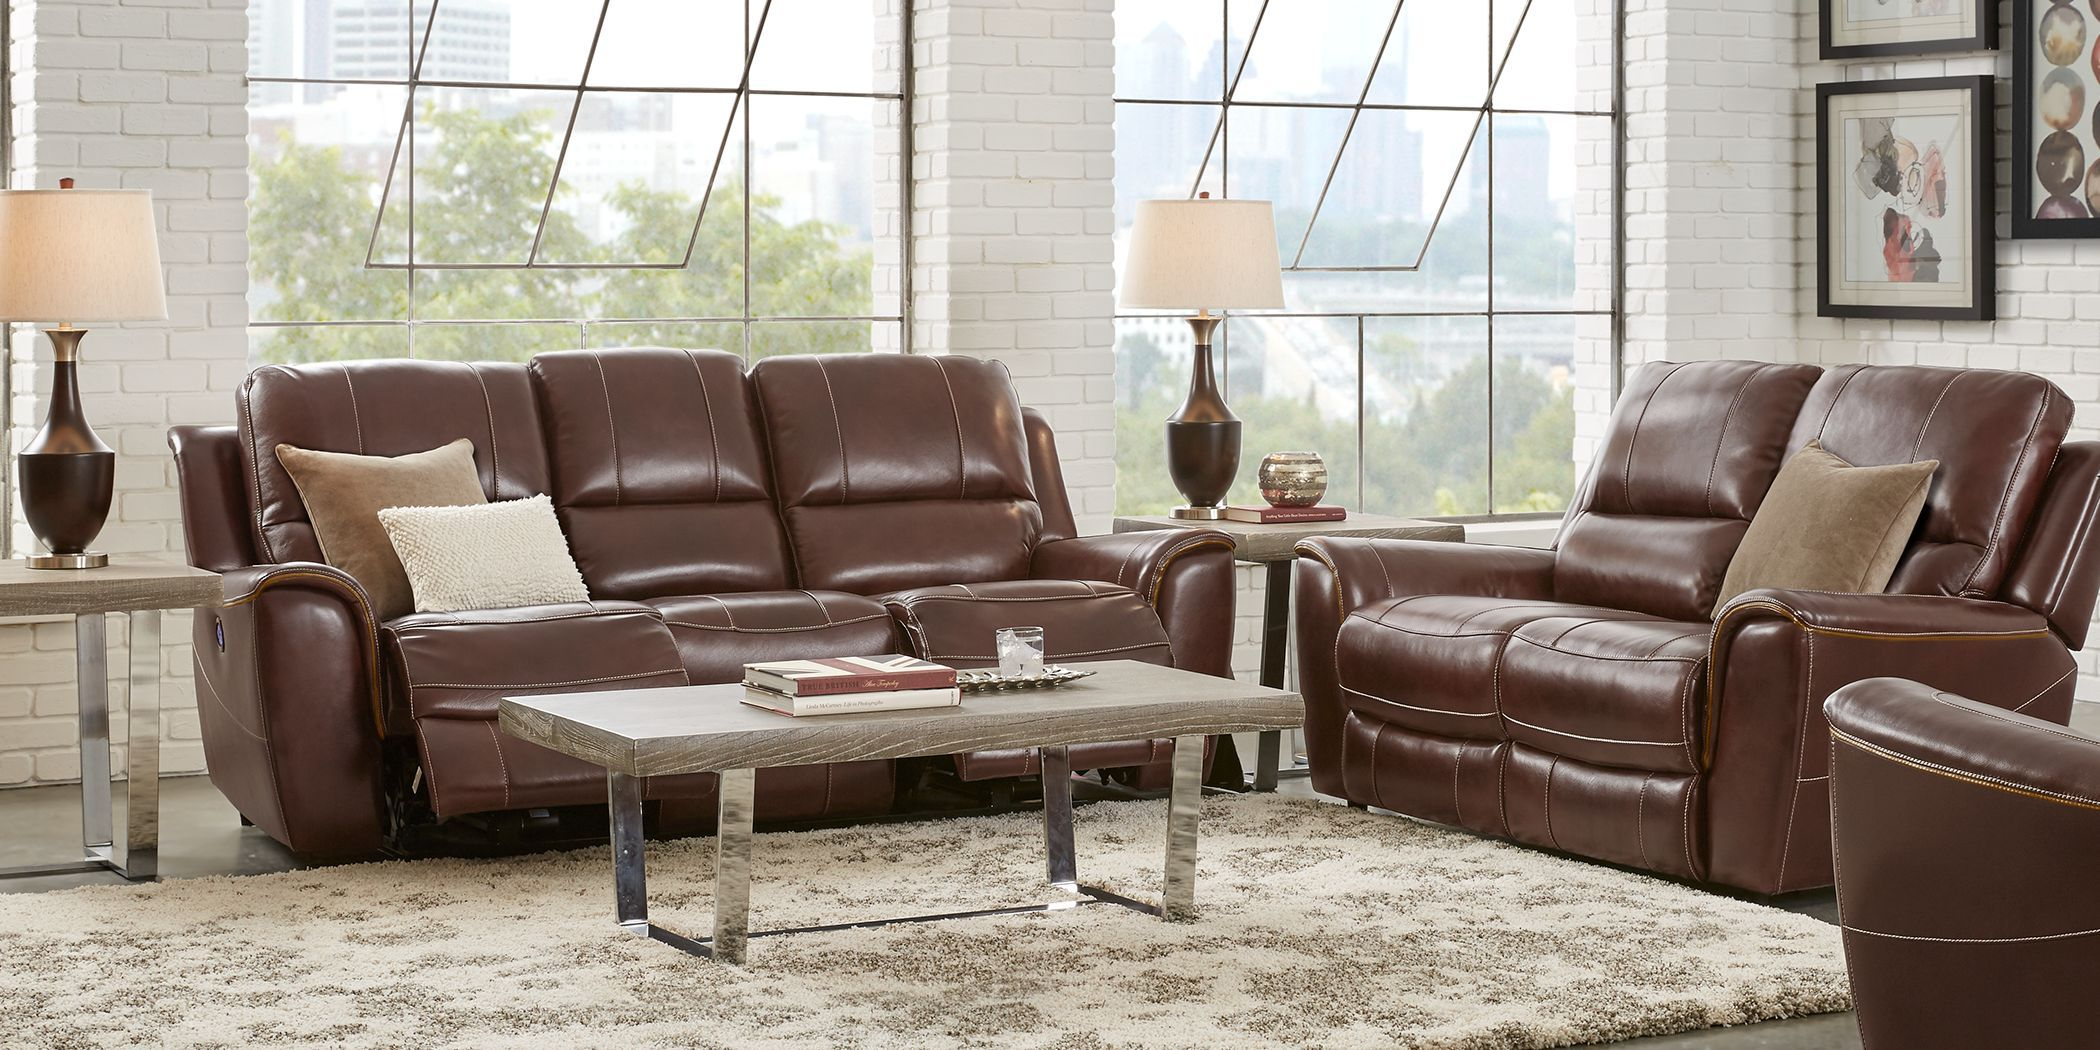 Lanzo Merlot Leather 5 Pc Living Room With Reclining Sofa Rooms